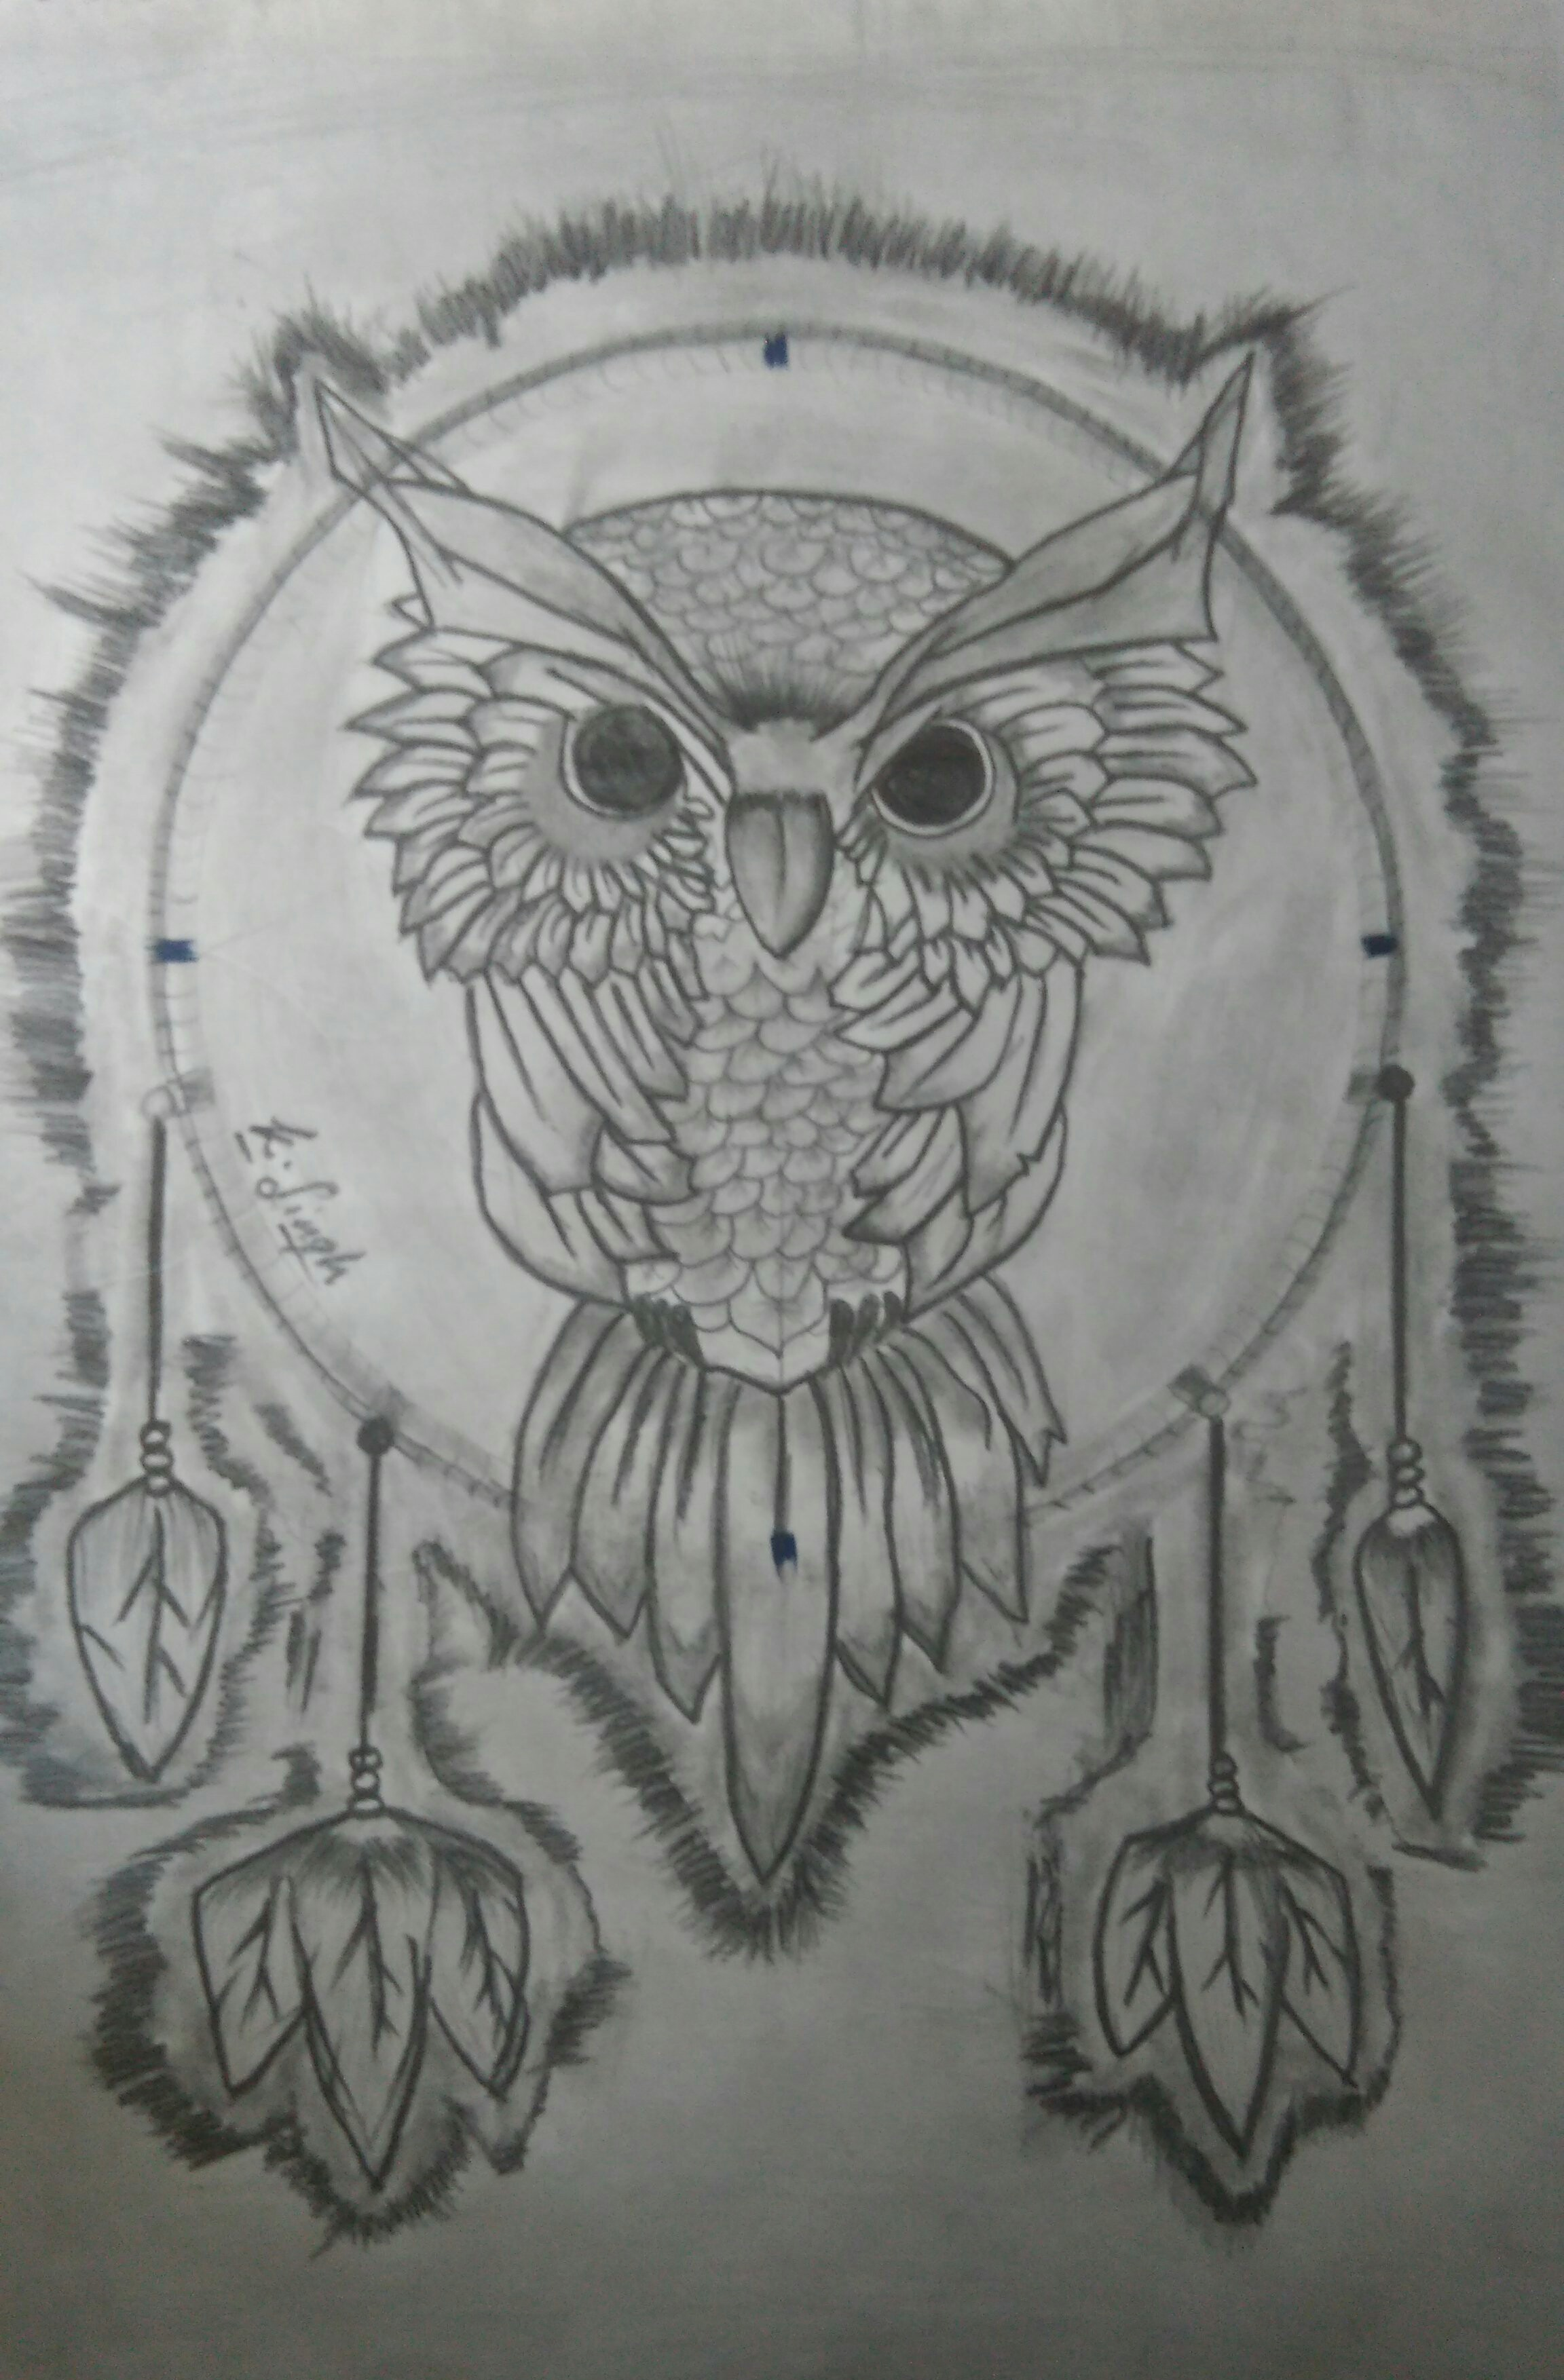 Dreaming Owl Sketch By kushalsingh rajpurohit, Drawing Fine